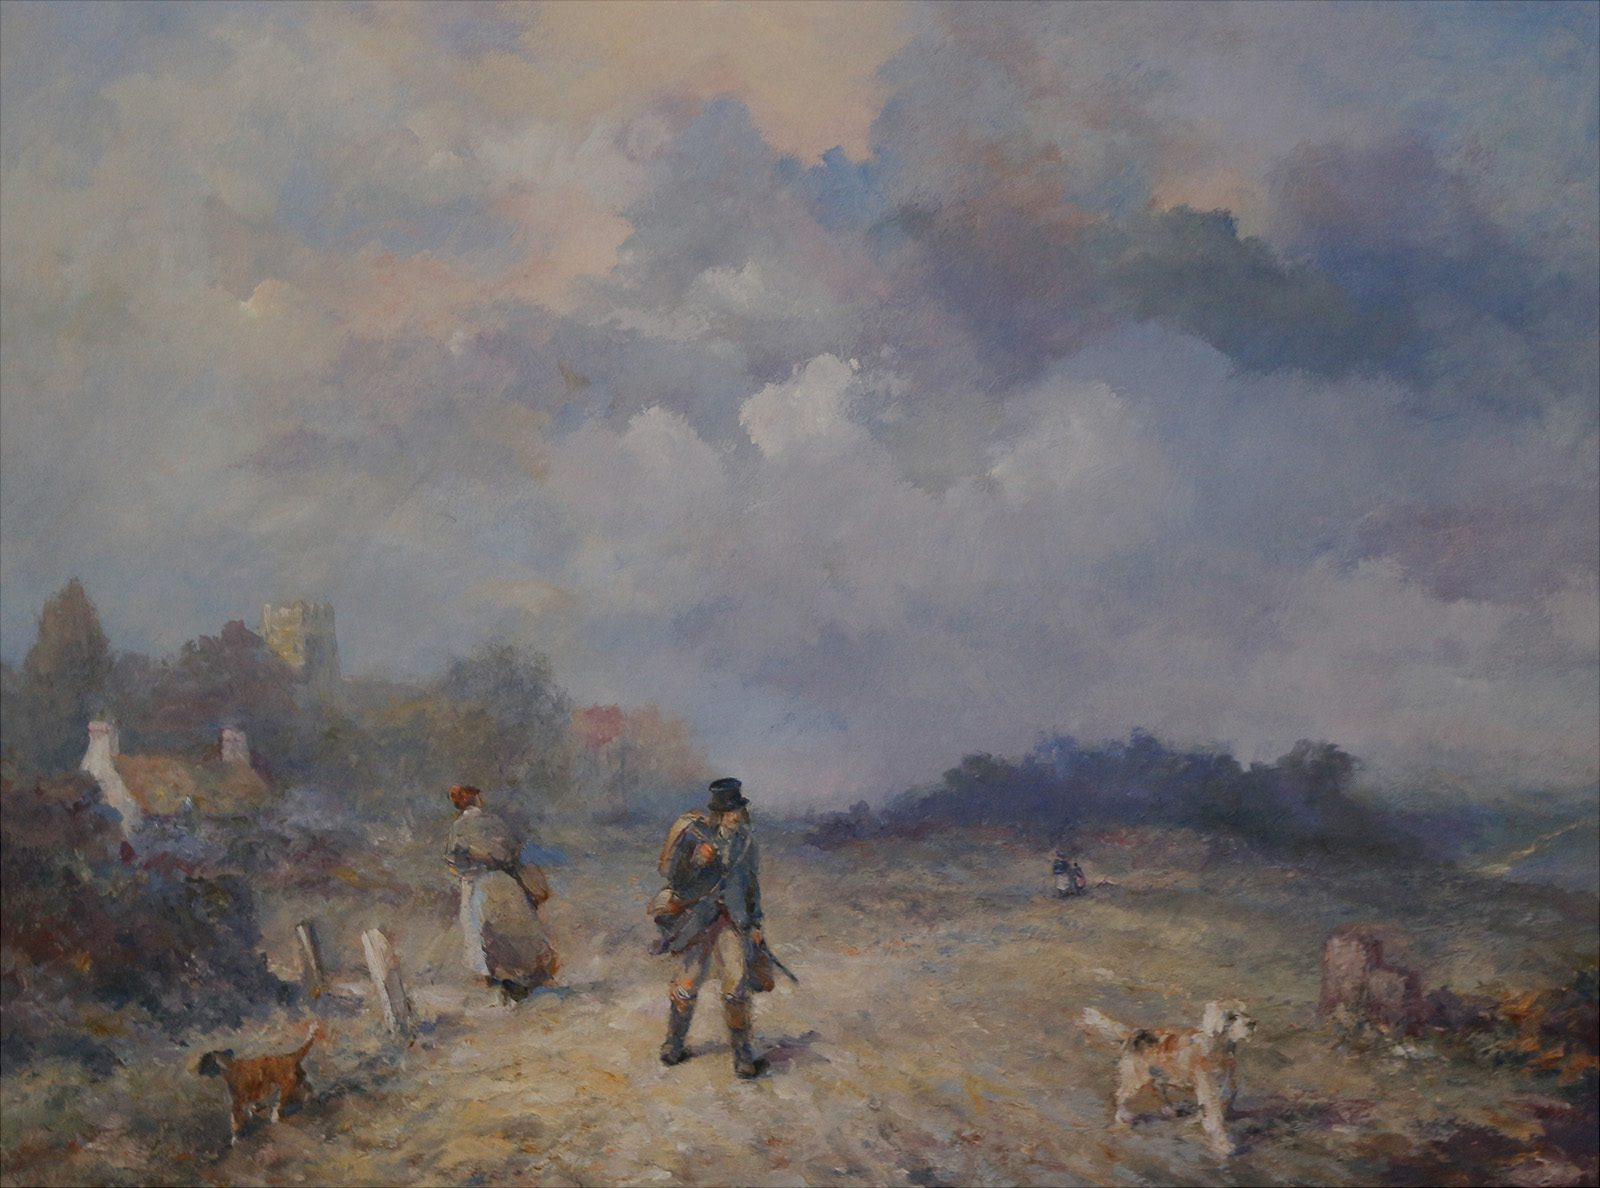 Country scene in oils with hunter and his dog by Stewart Taylor